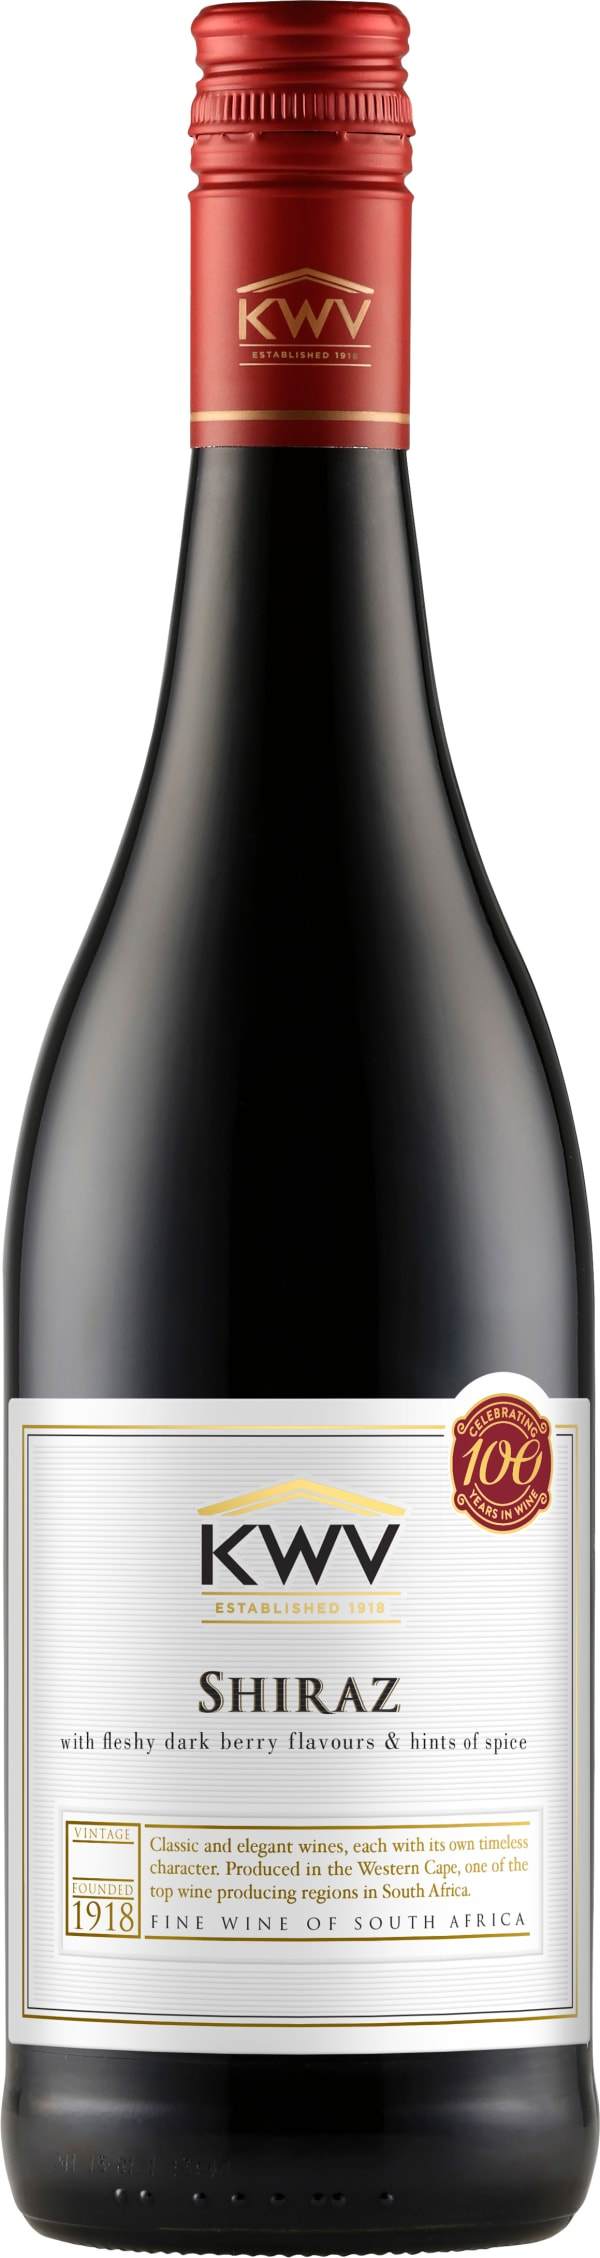 KWV Classic Collection Shiraz 2018